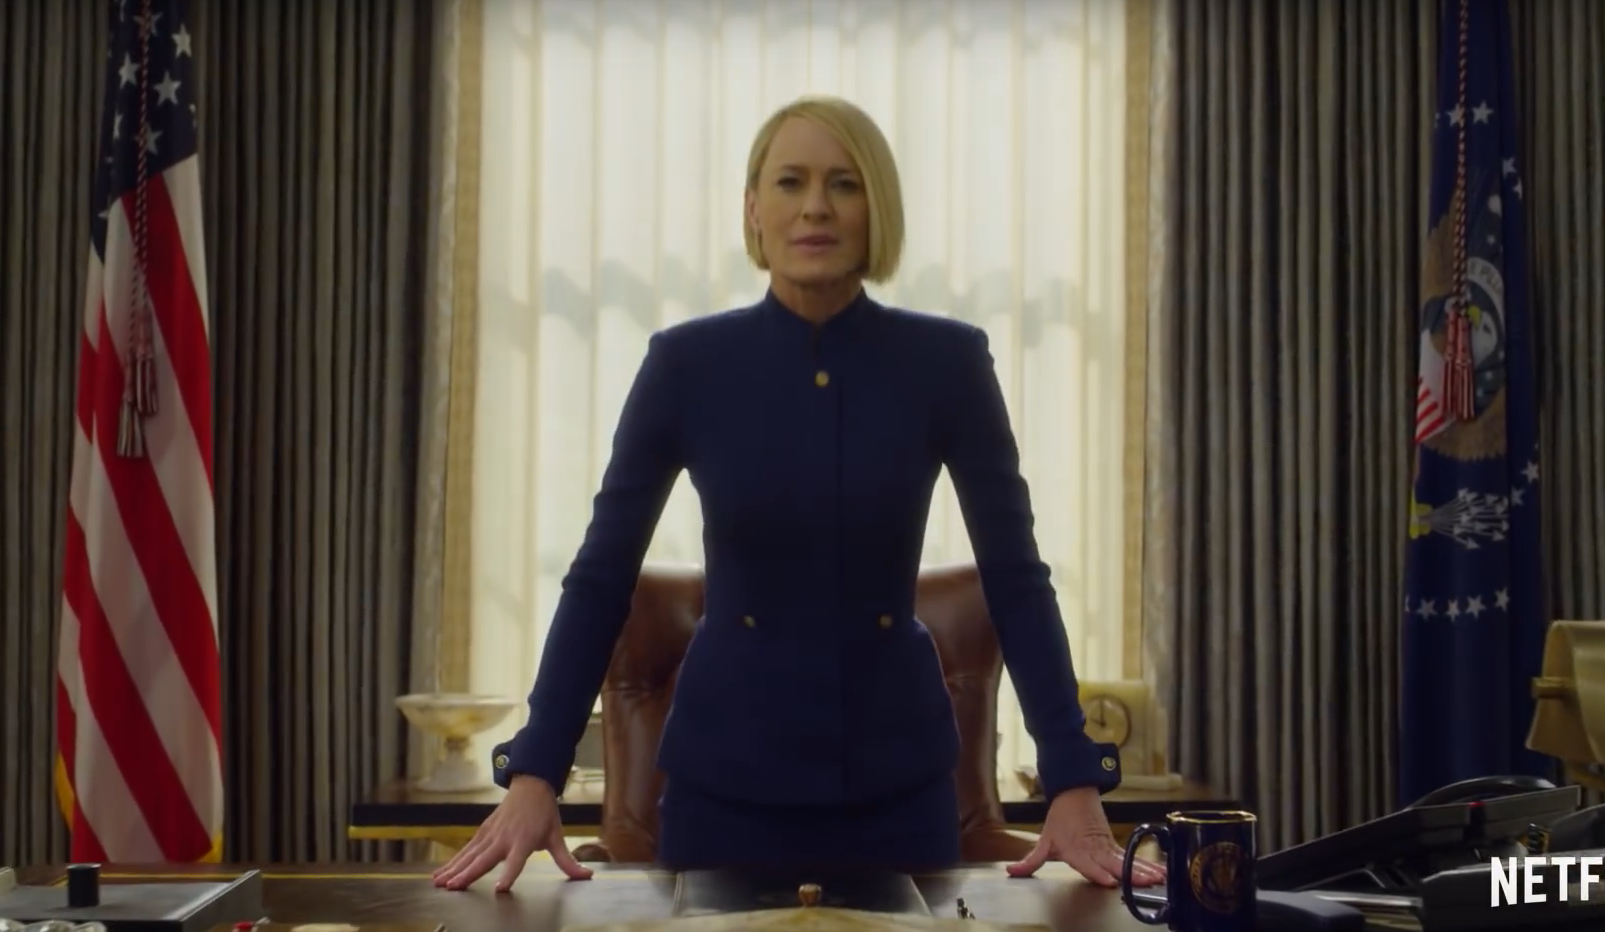 This new House of Cards preview is quite flawless